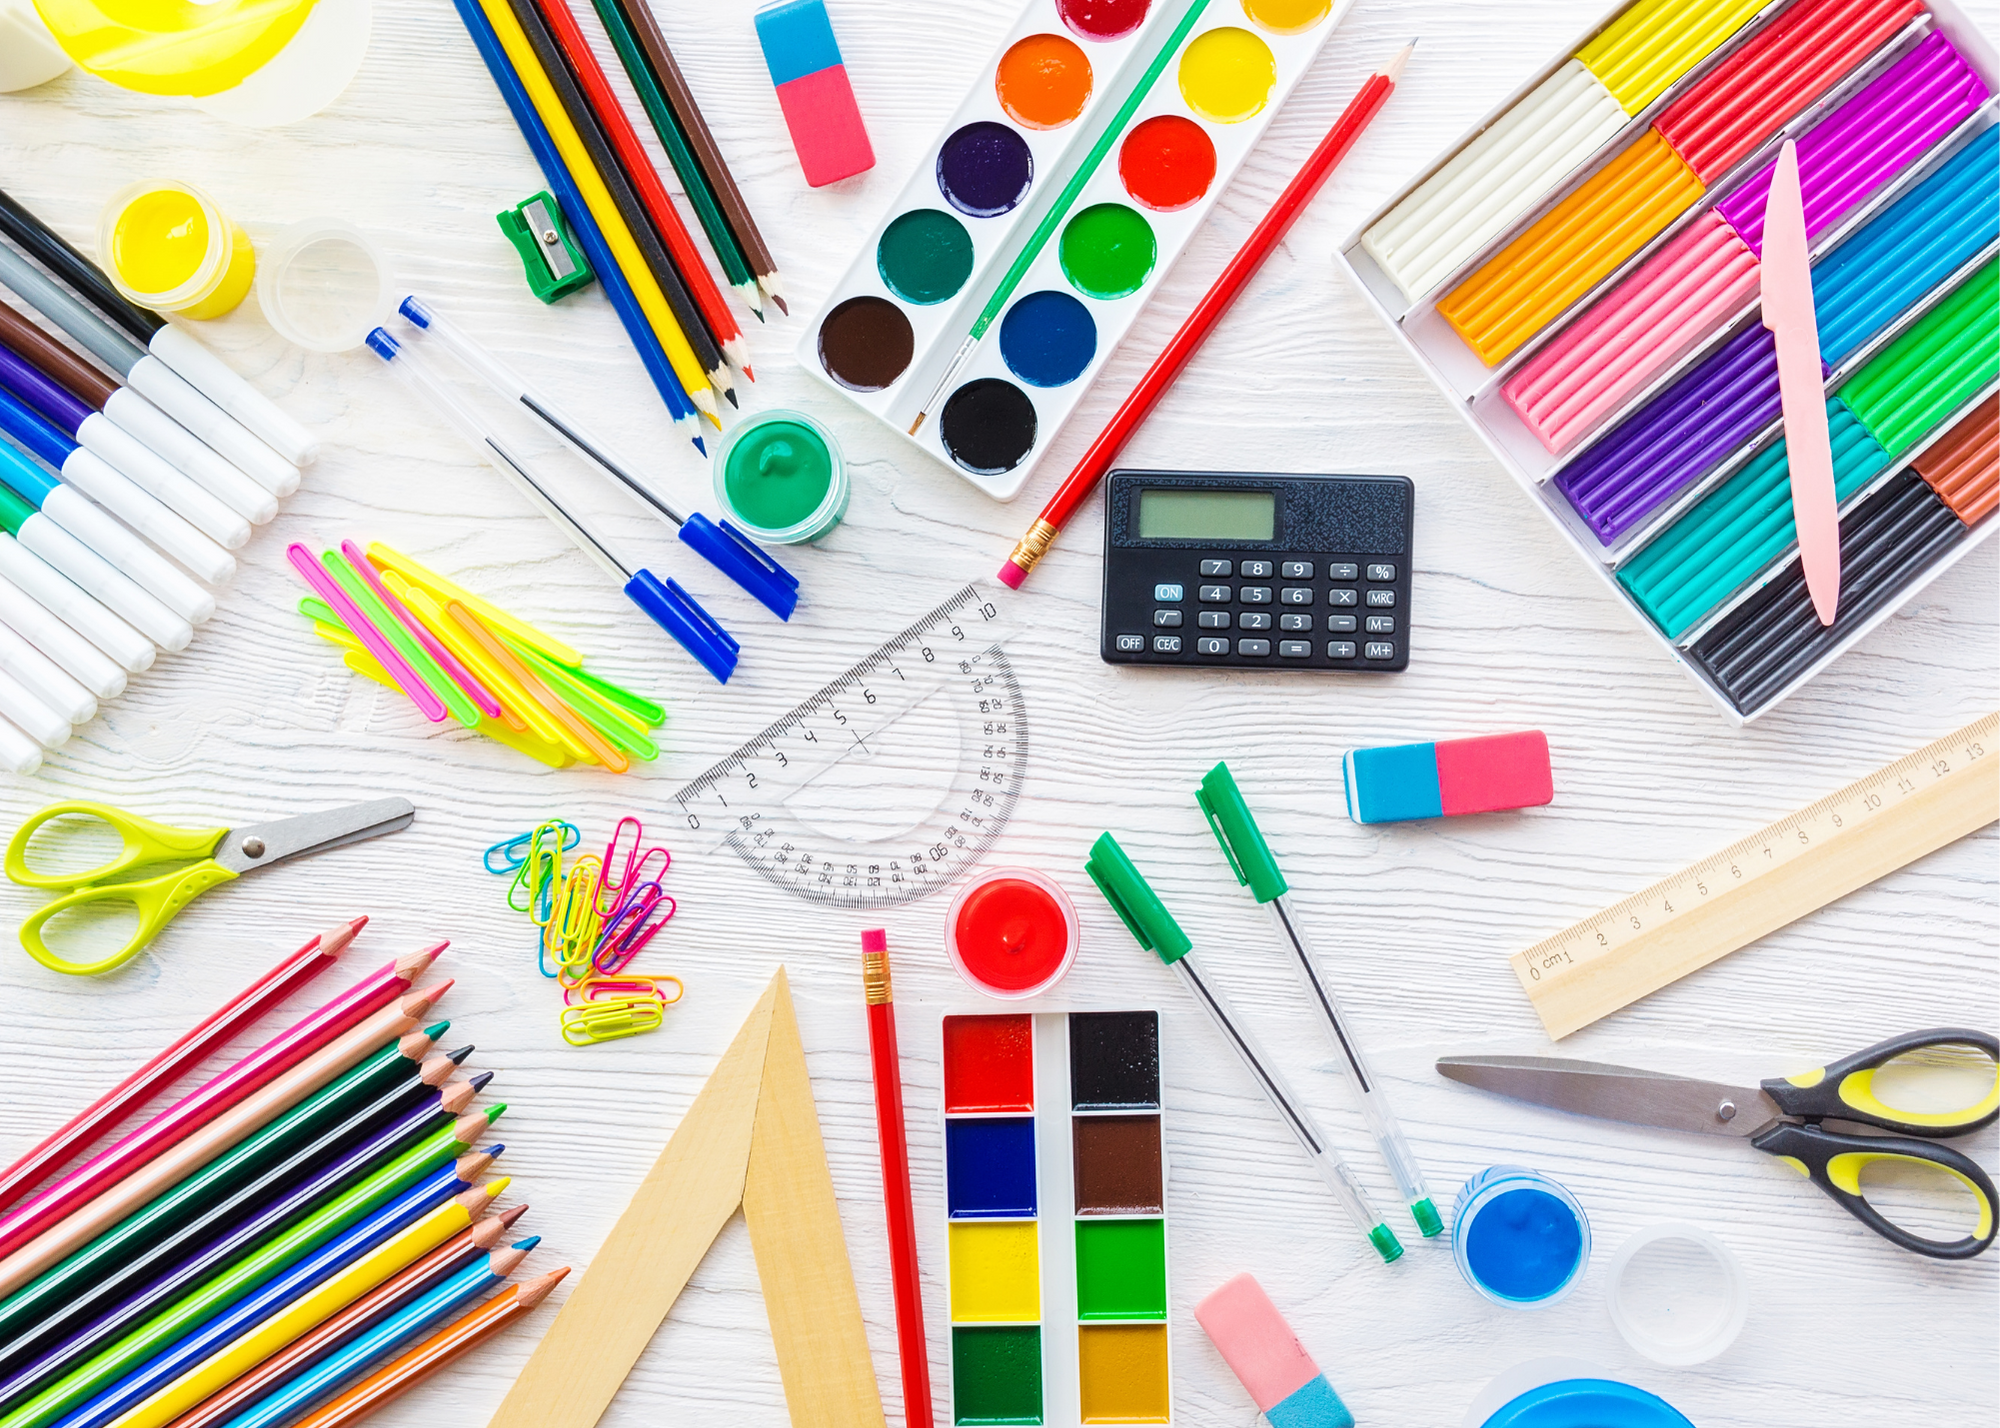 water paint, zulily school supplies, crayons, color pencils, triangle ruler, compass ruler